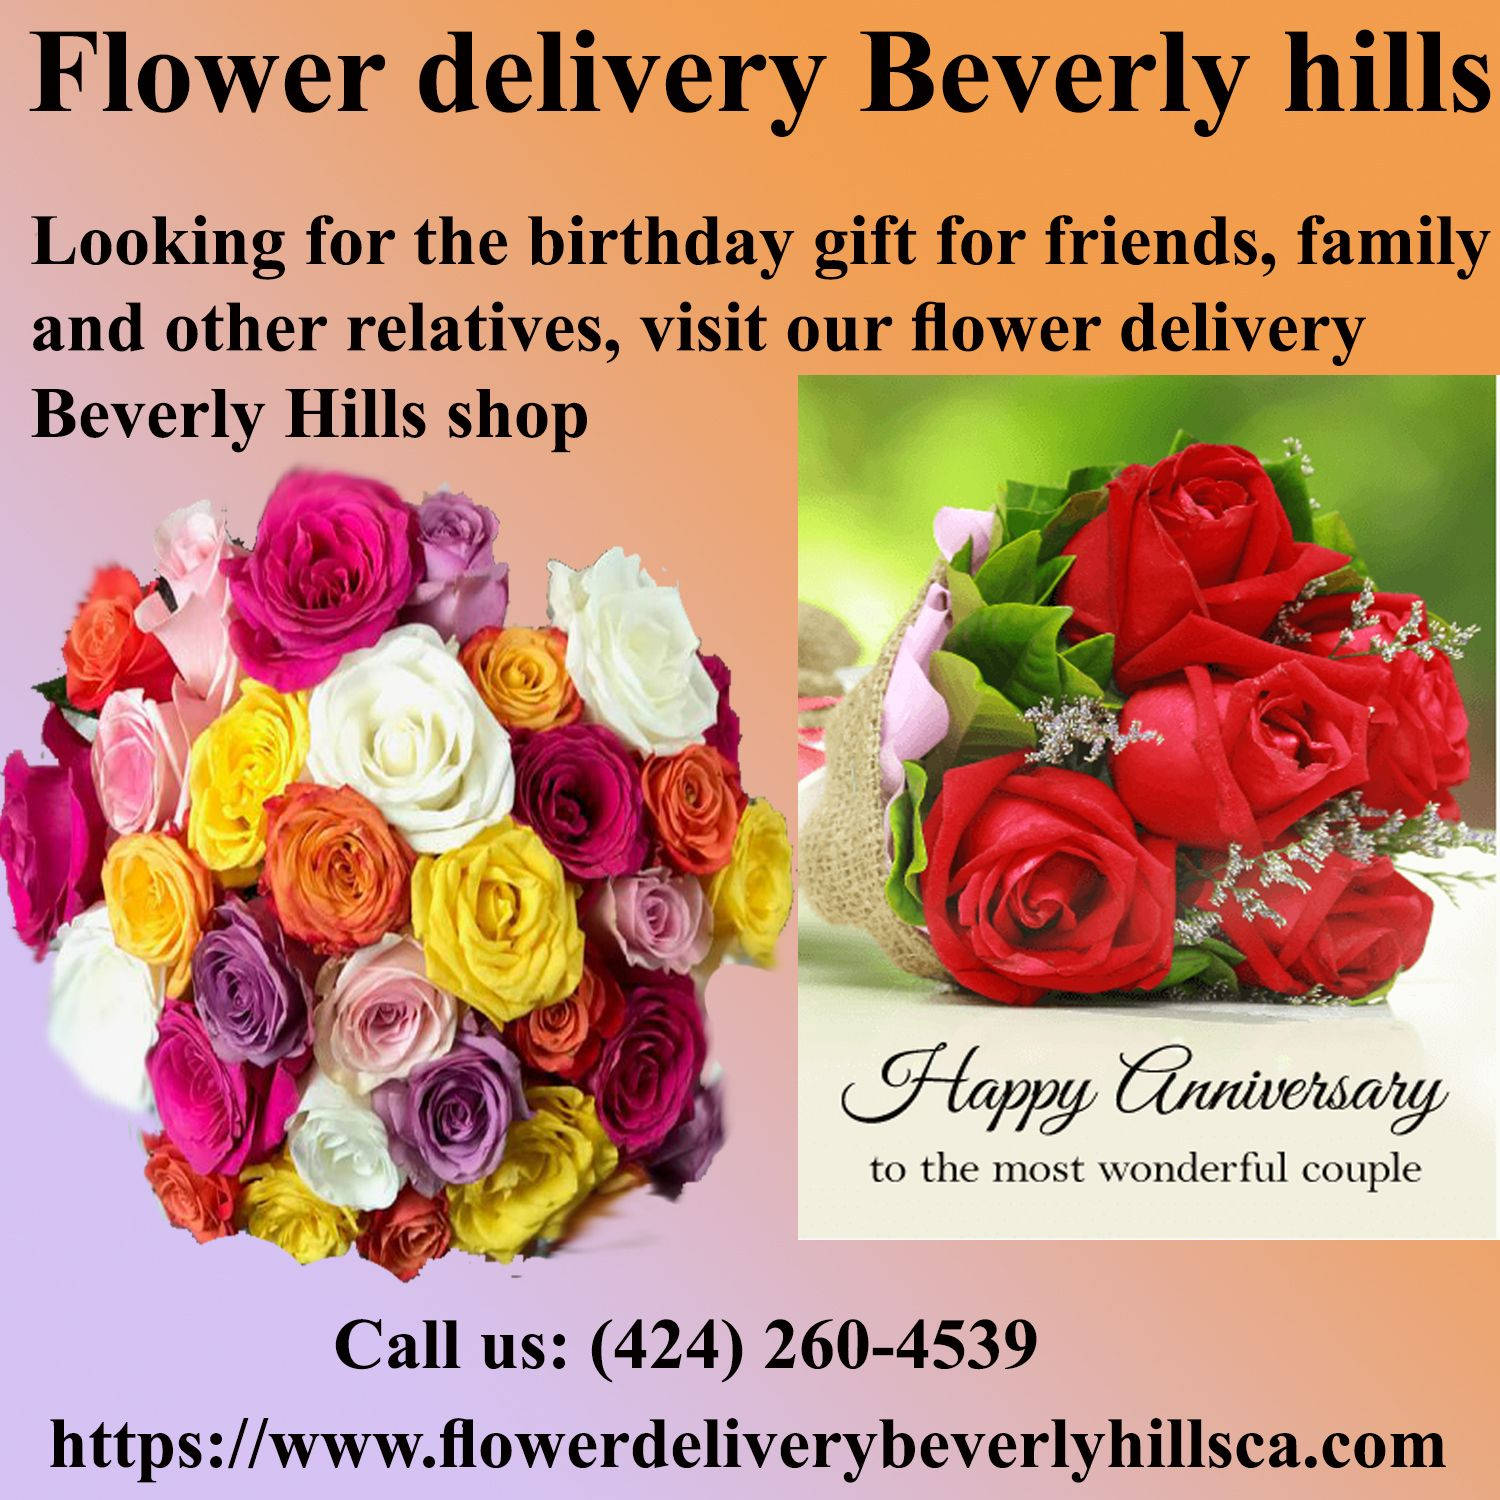 Looking For The Birthday Gift For Friends Family And Other